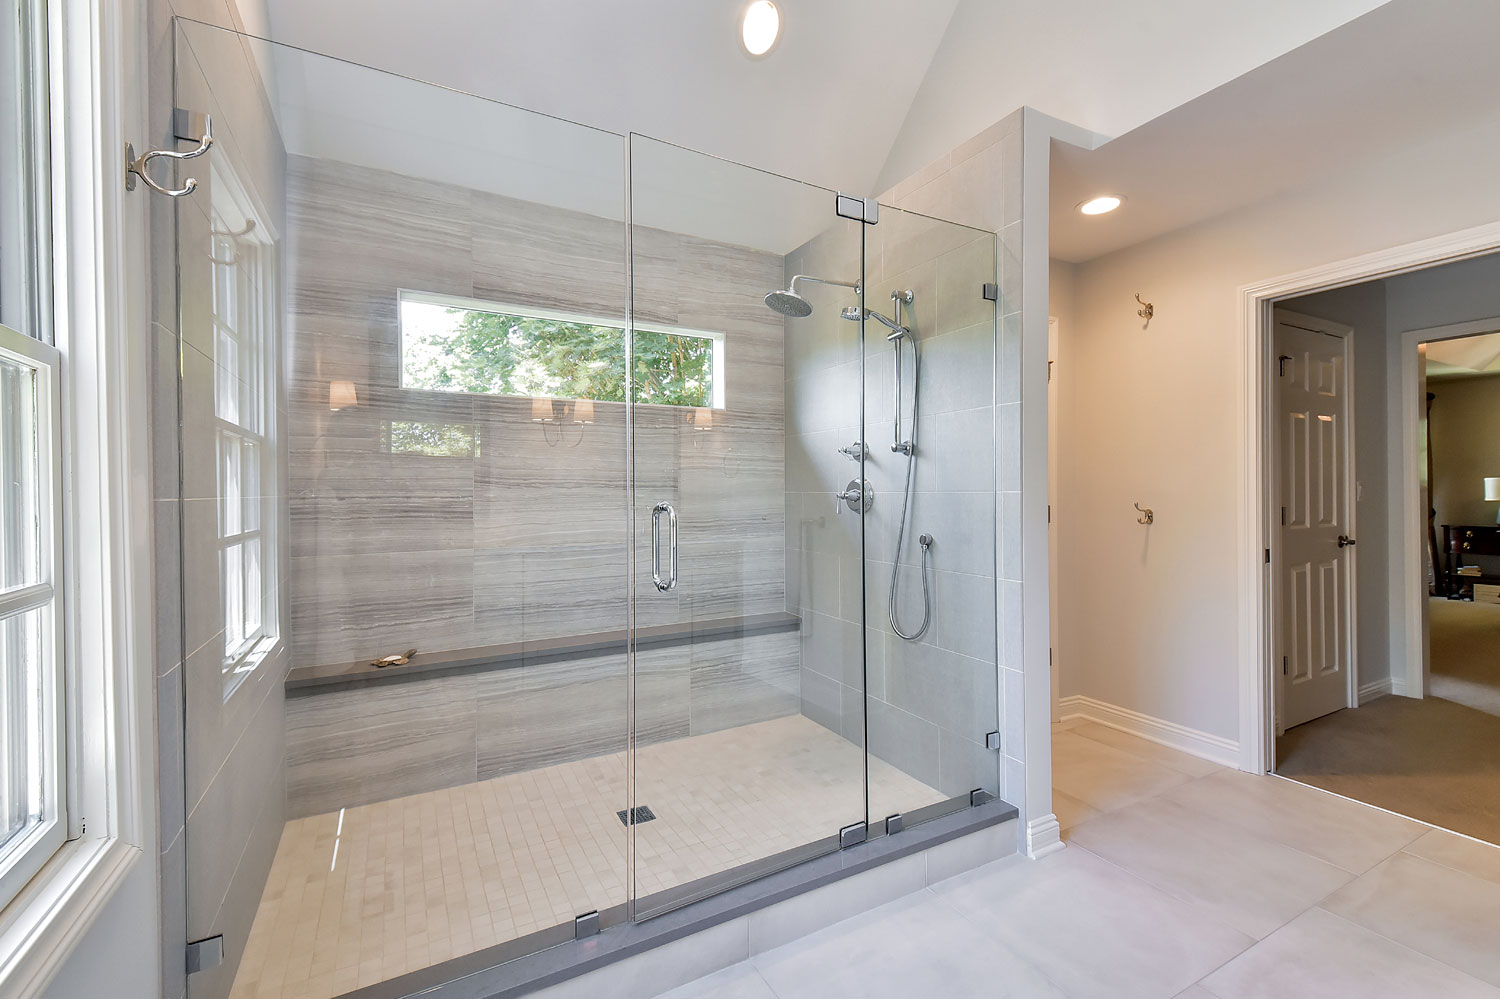 4 Reasons To Live In A New Home Before Renovating